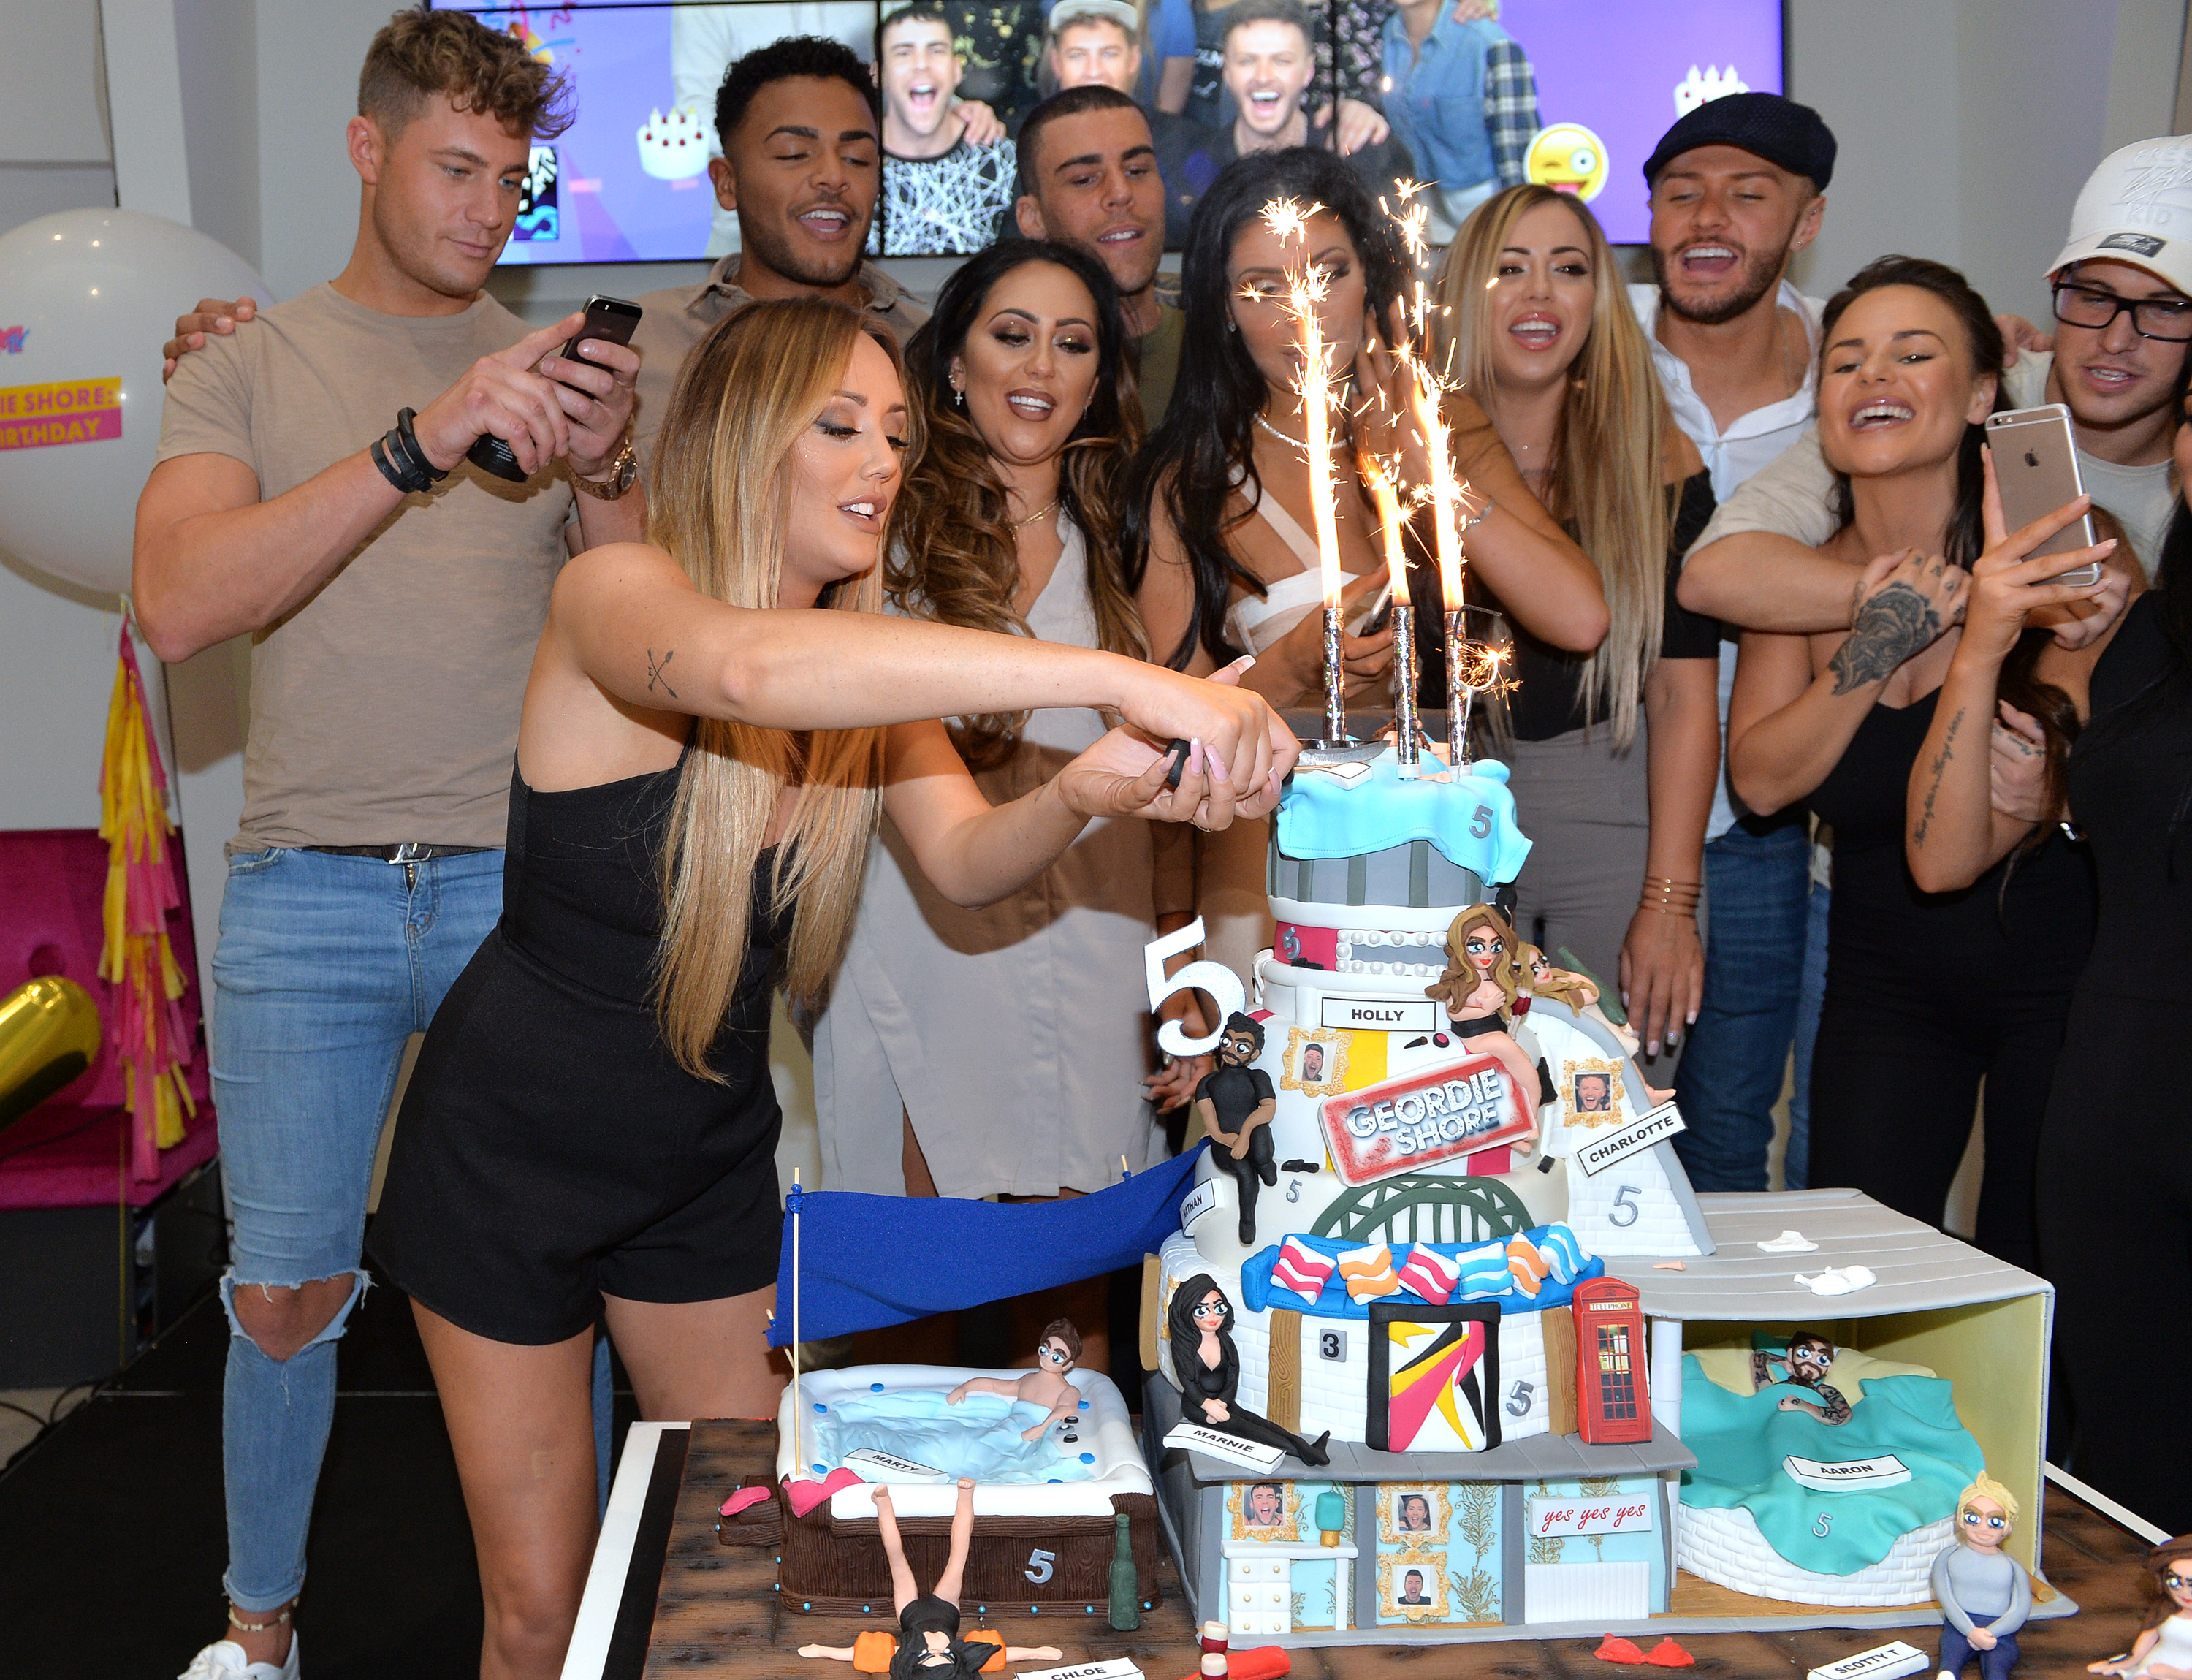 LONDON, ENGLAND - MAY 24: Charlotte-Letitia Crosby cuts the birthday cake with Holly Hagan, Chloe Etherington, Chantelle Connelly, Marnie Simpson, Sophie Kasaei, Aaron Chalmers, Nathan Henry, Scott Timlin, Marty McKenna, James Tindale and Dan Thomas-Tuck of Geordie Shore celebrate their fifth birthday at MTV London on May 24, 2016 in London, England. (Photo by Anthony Harvey/Getty Images) *** Local Caption *** Charlotte-Letitia Crosby; Holly Hagan; Chloe Etherington; Chantelle Connelly; Marnie Simpson; Sophie Kasaei; Aaron Chalmers; Nathan Henry; Scott Timlin; Marty McKenna; James Tindale; Dan Thomas-Tuck